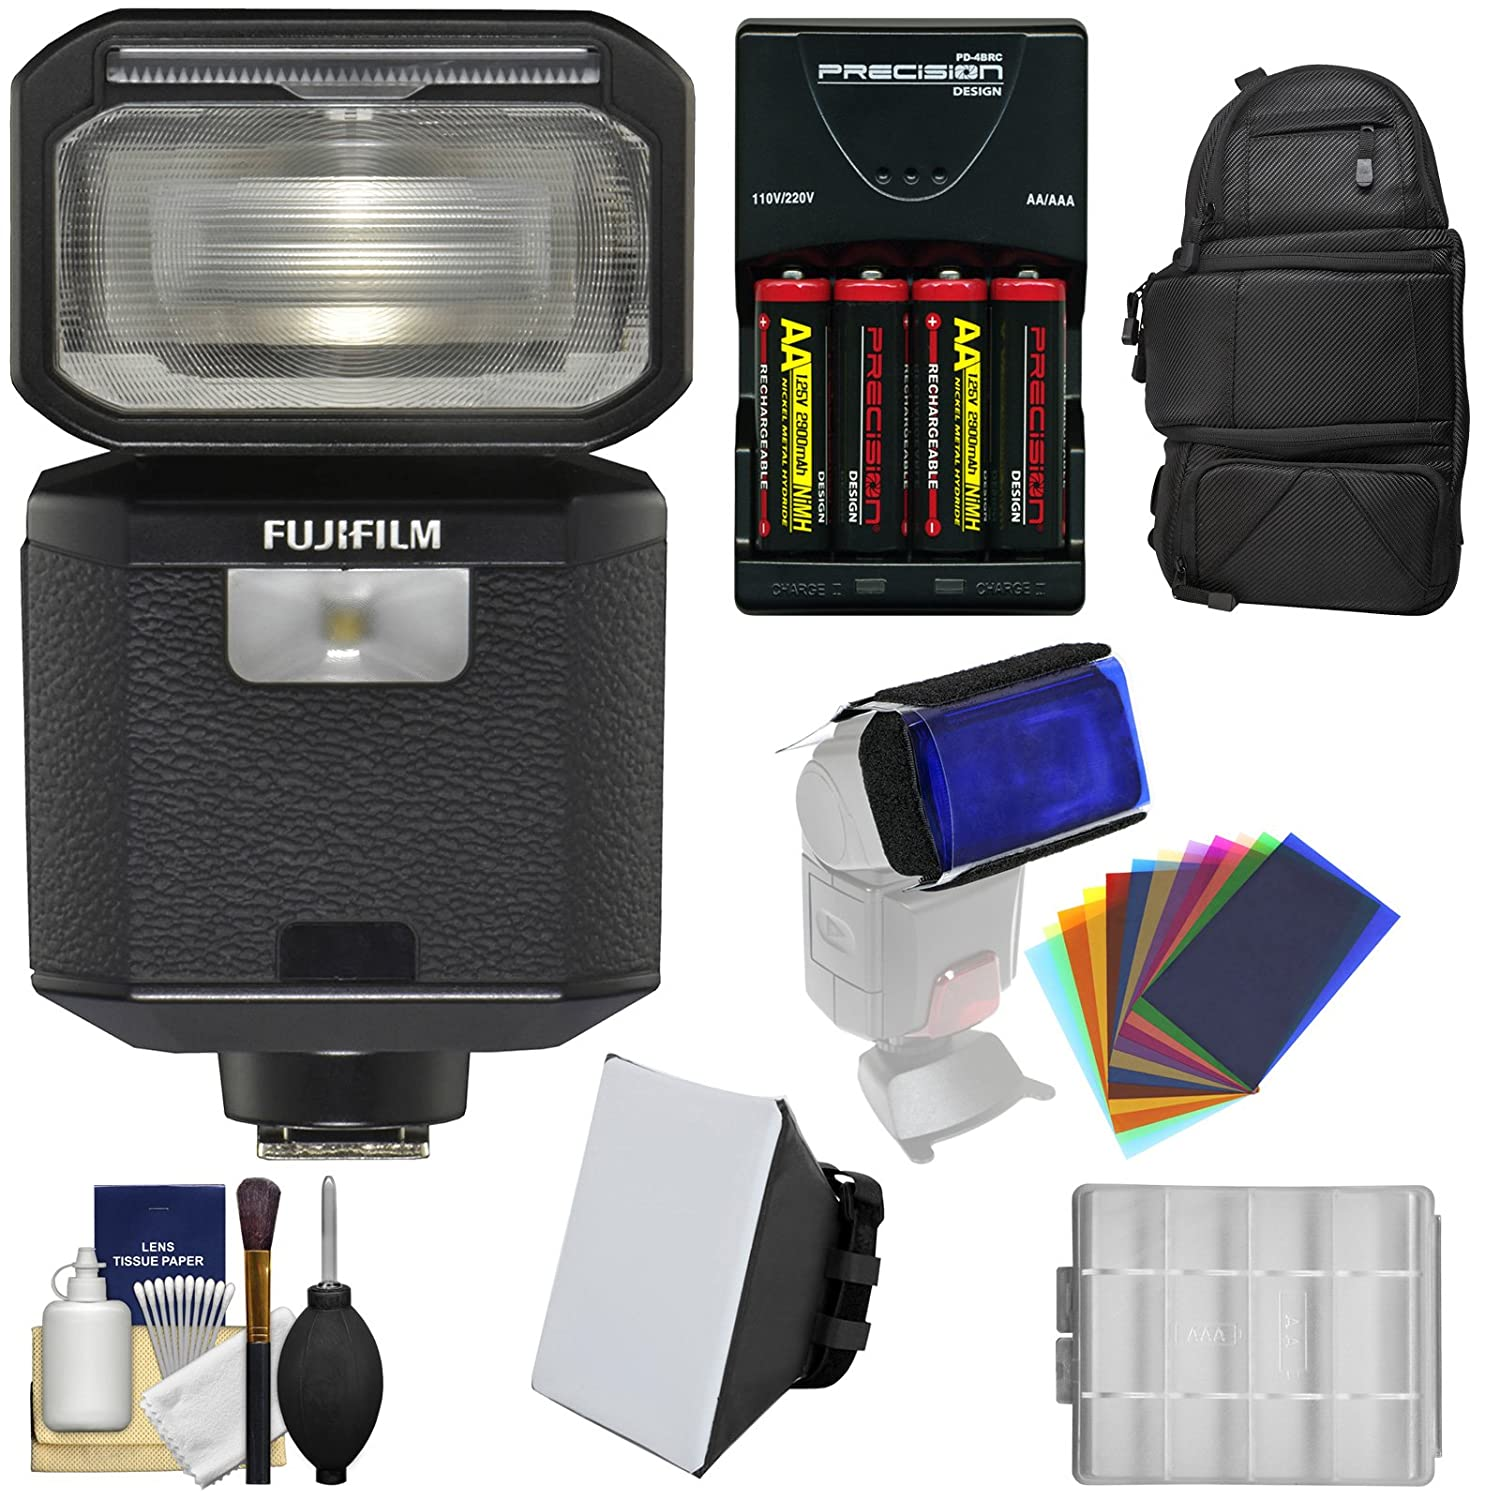 Fujifilm EF-X500 Shoe Mount Flash & LED Video Light with Backpack + Soft Box + 12 Color Gel Filters + Batteries & Charger Kit